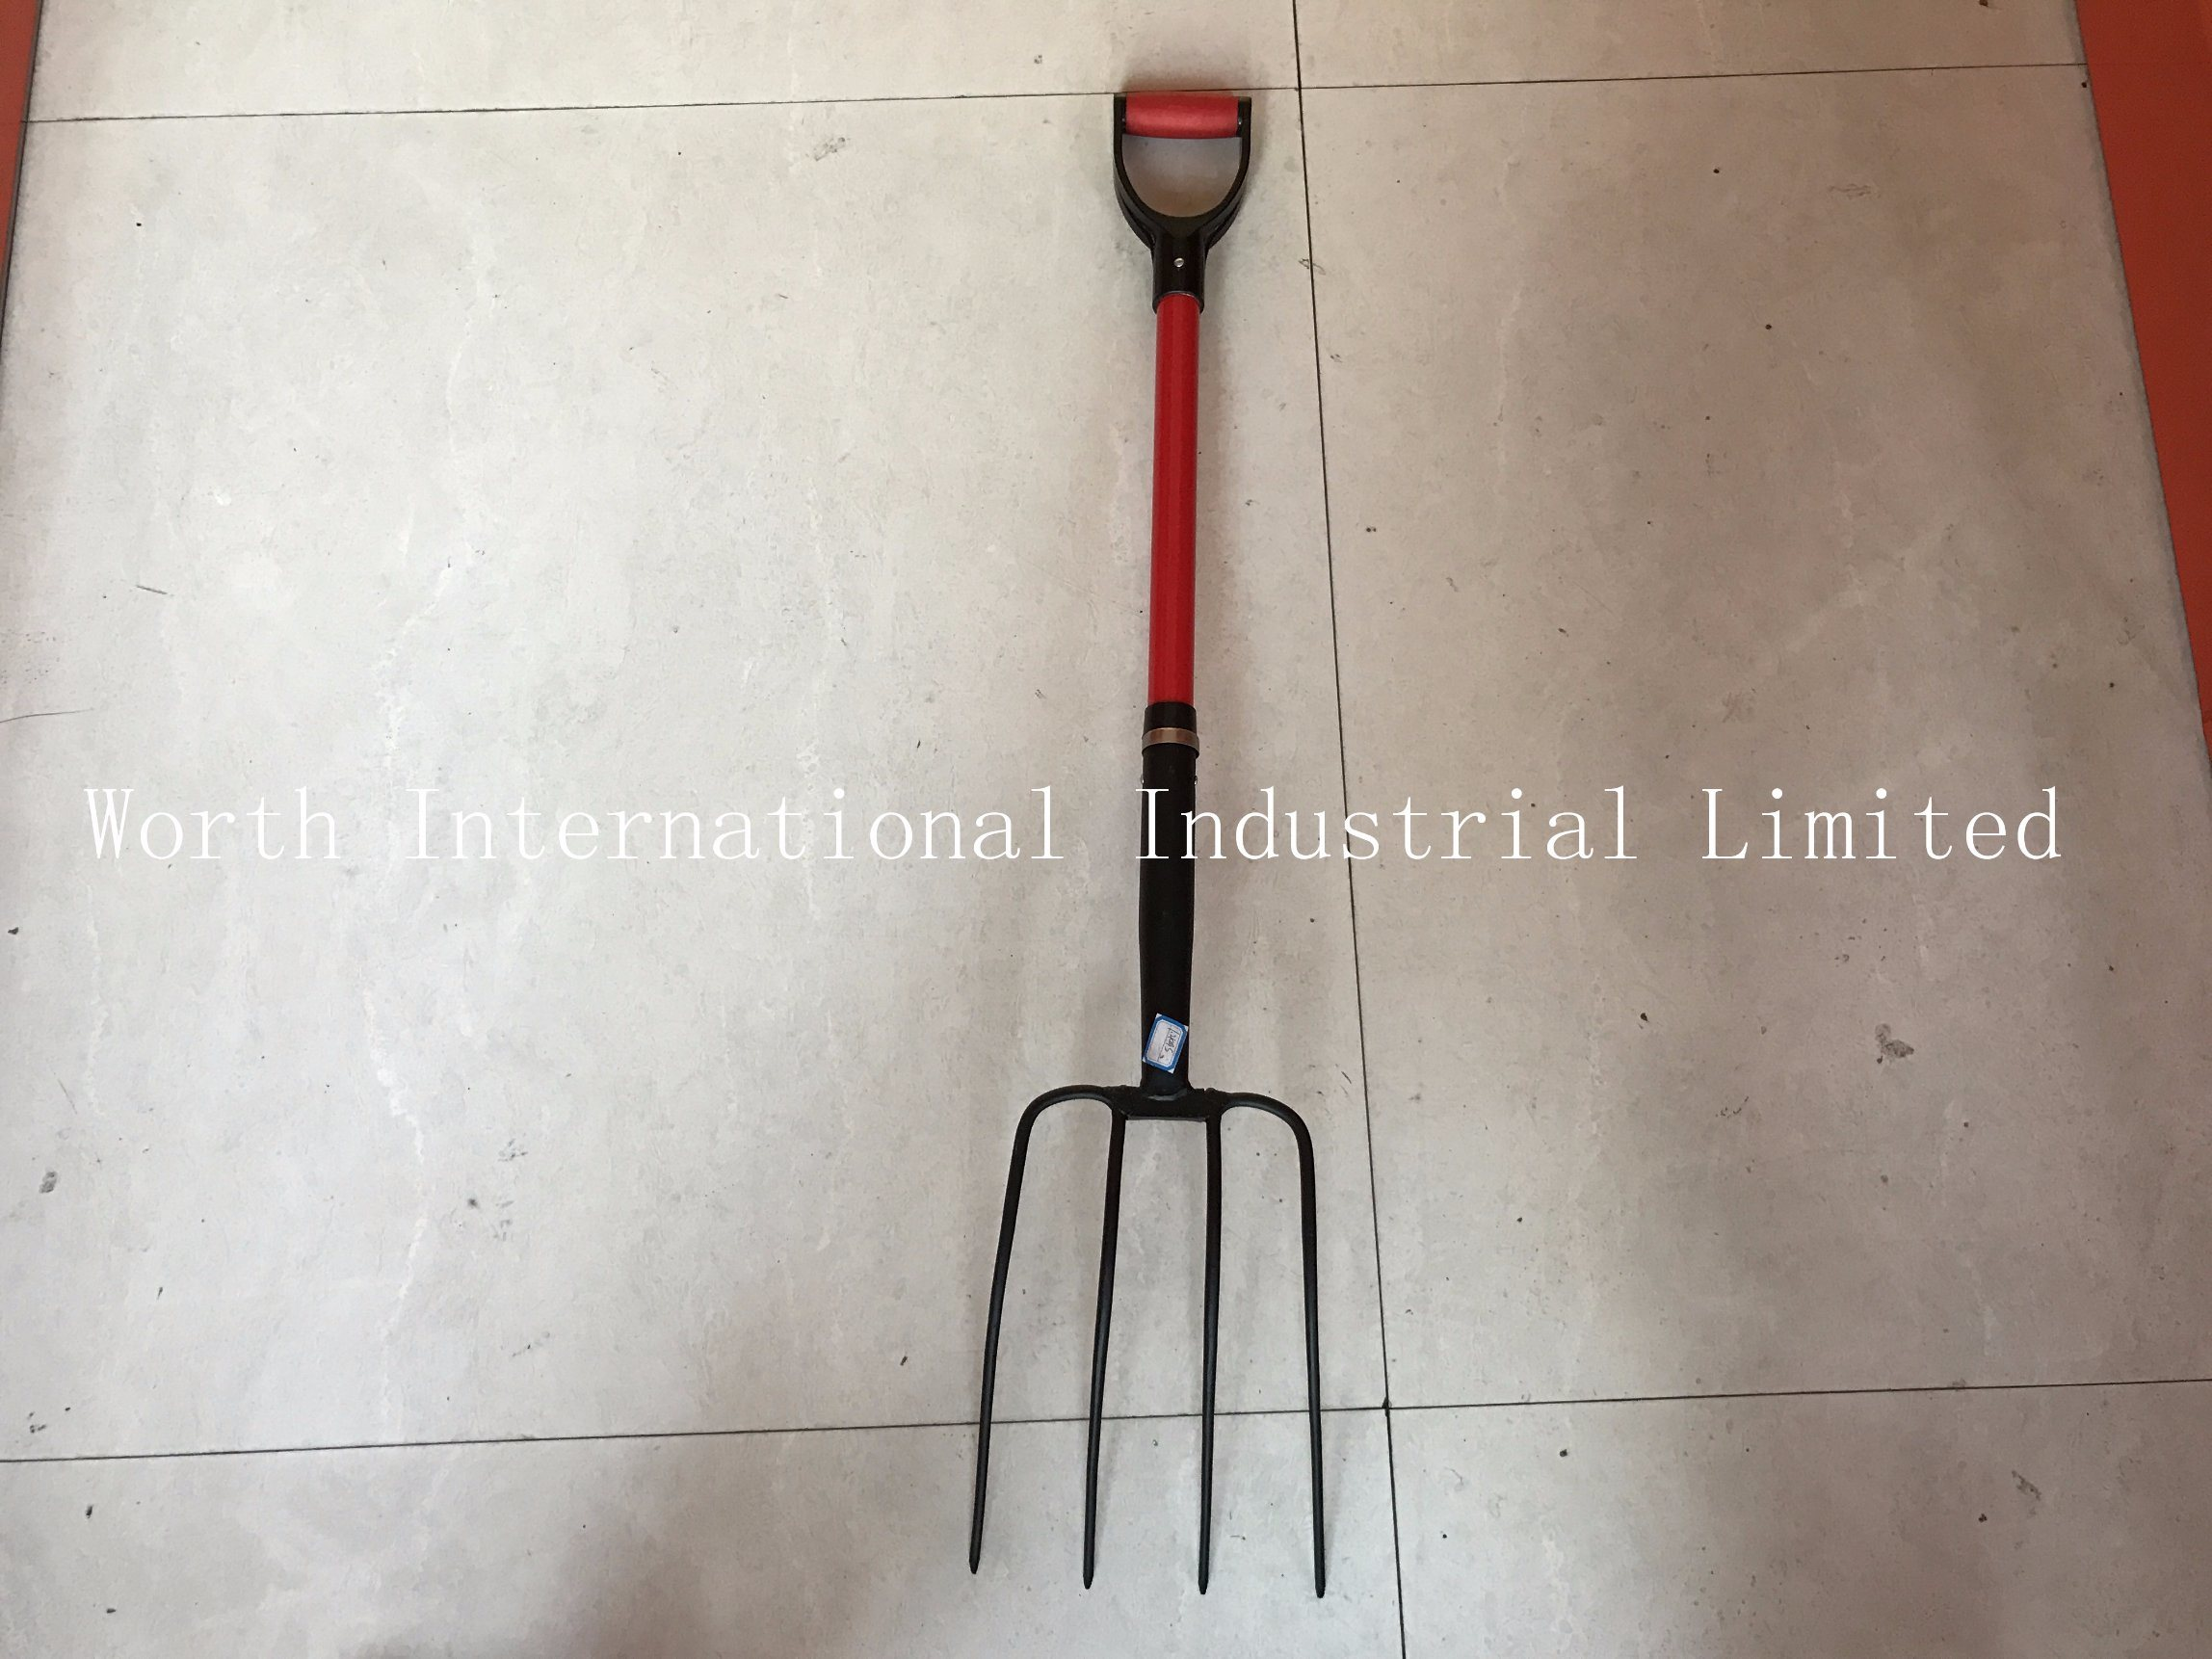 Fiberglass Handle Shovel D Grip